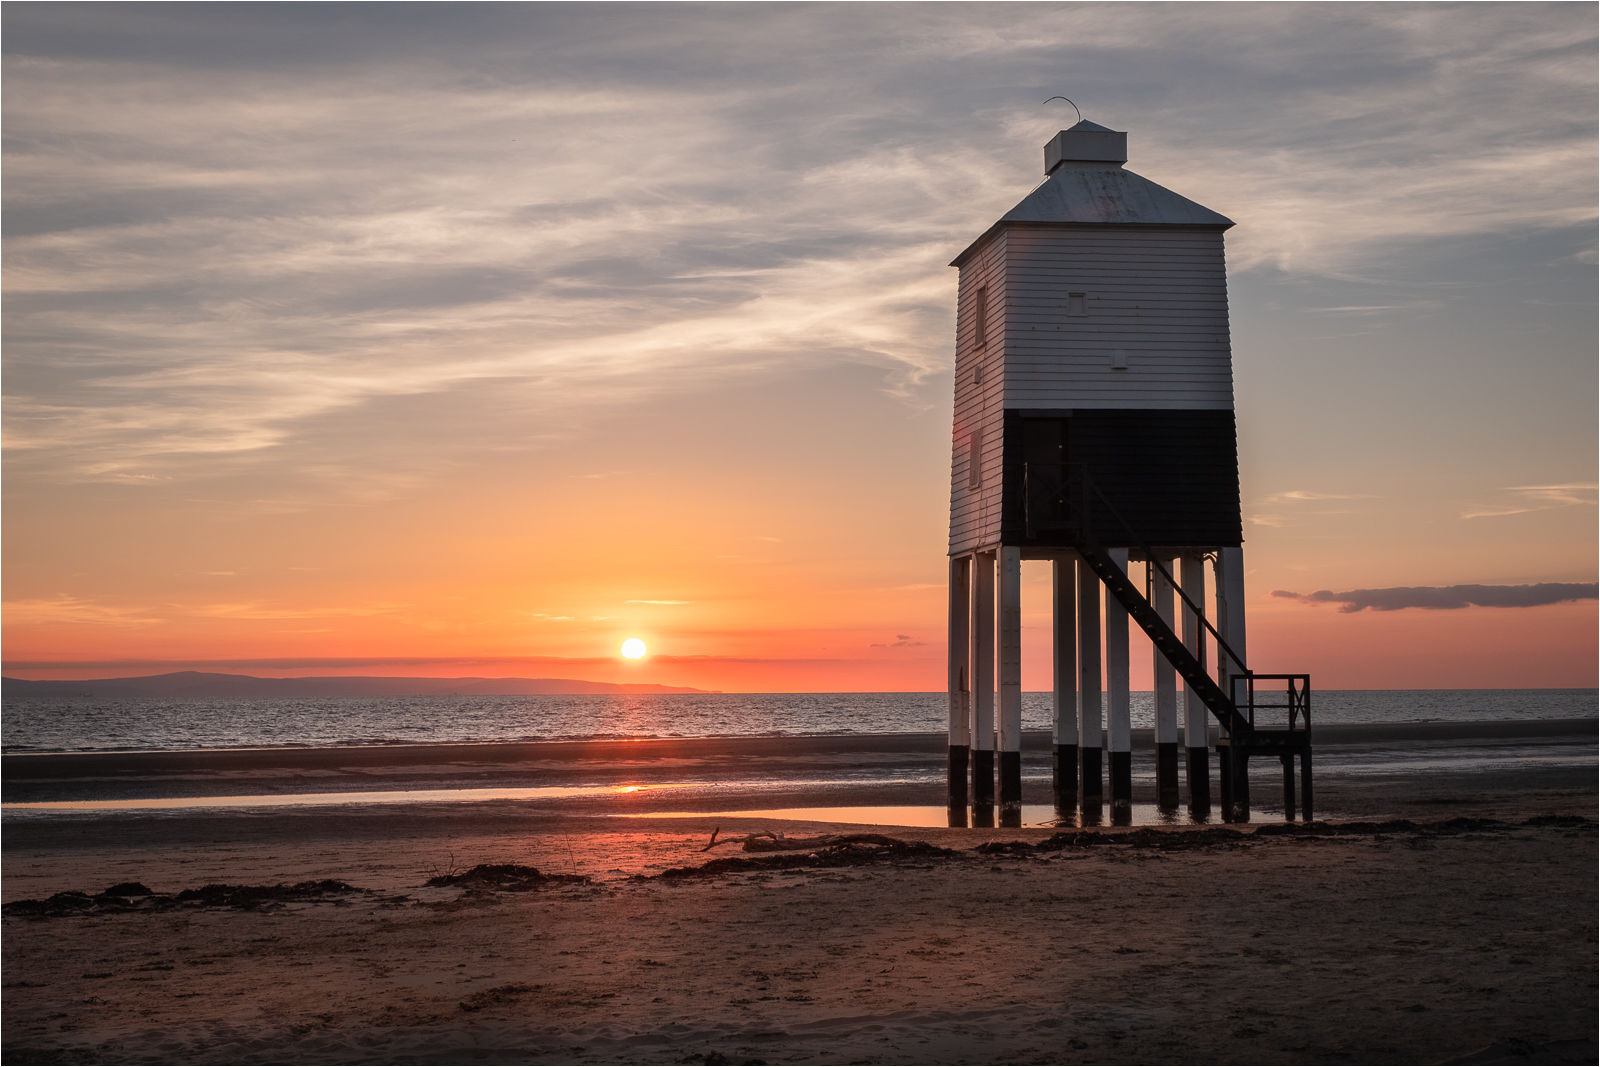 Sunset Burnham Lighthouse - Elaine Adkin